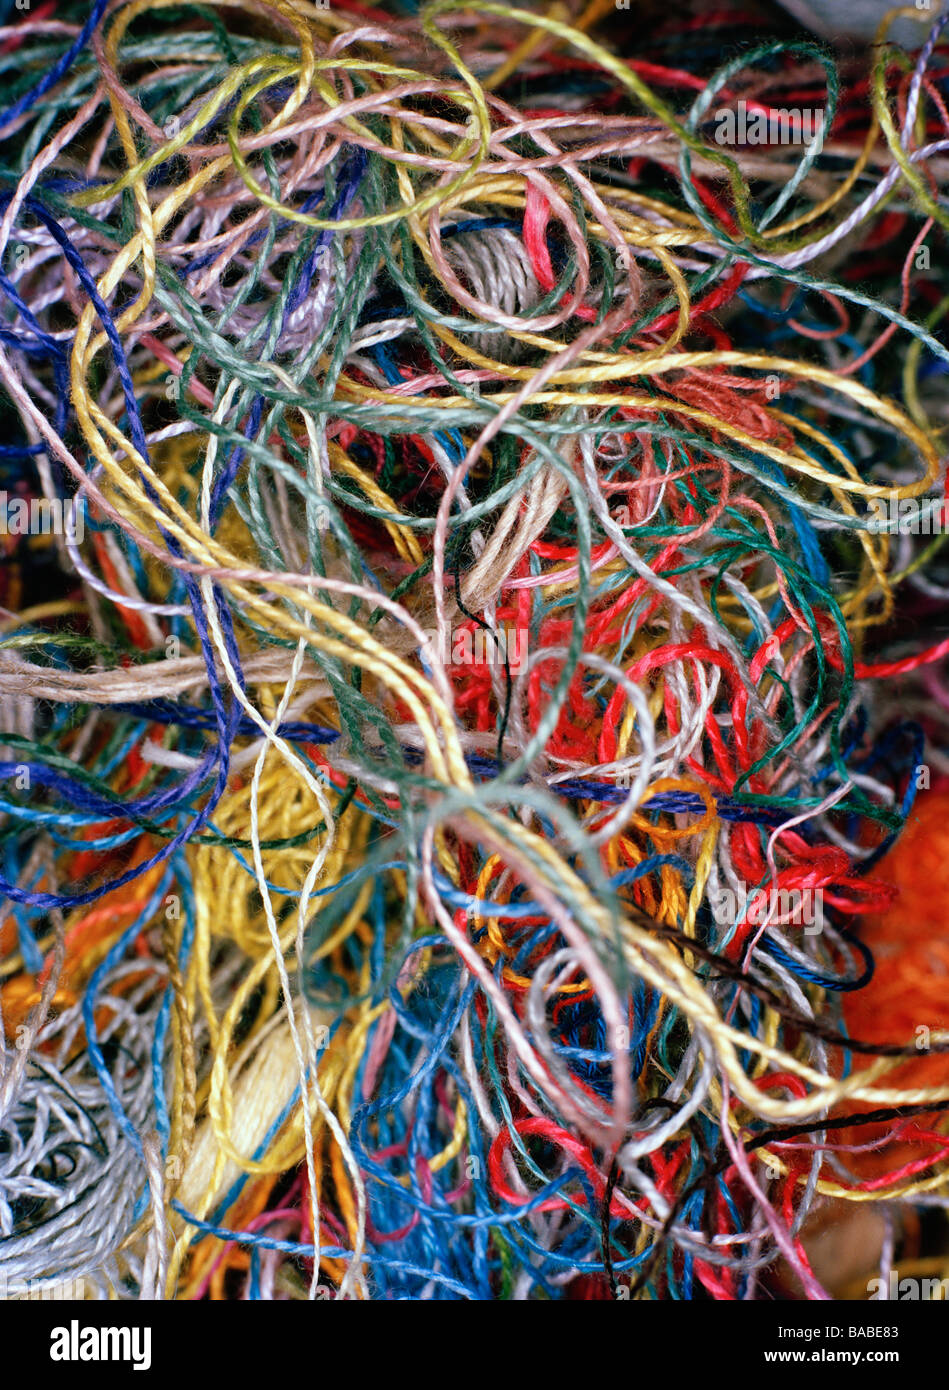 Yarn in disorder close-up - Stock Image